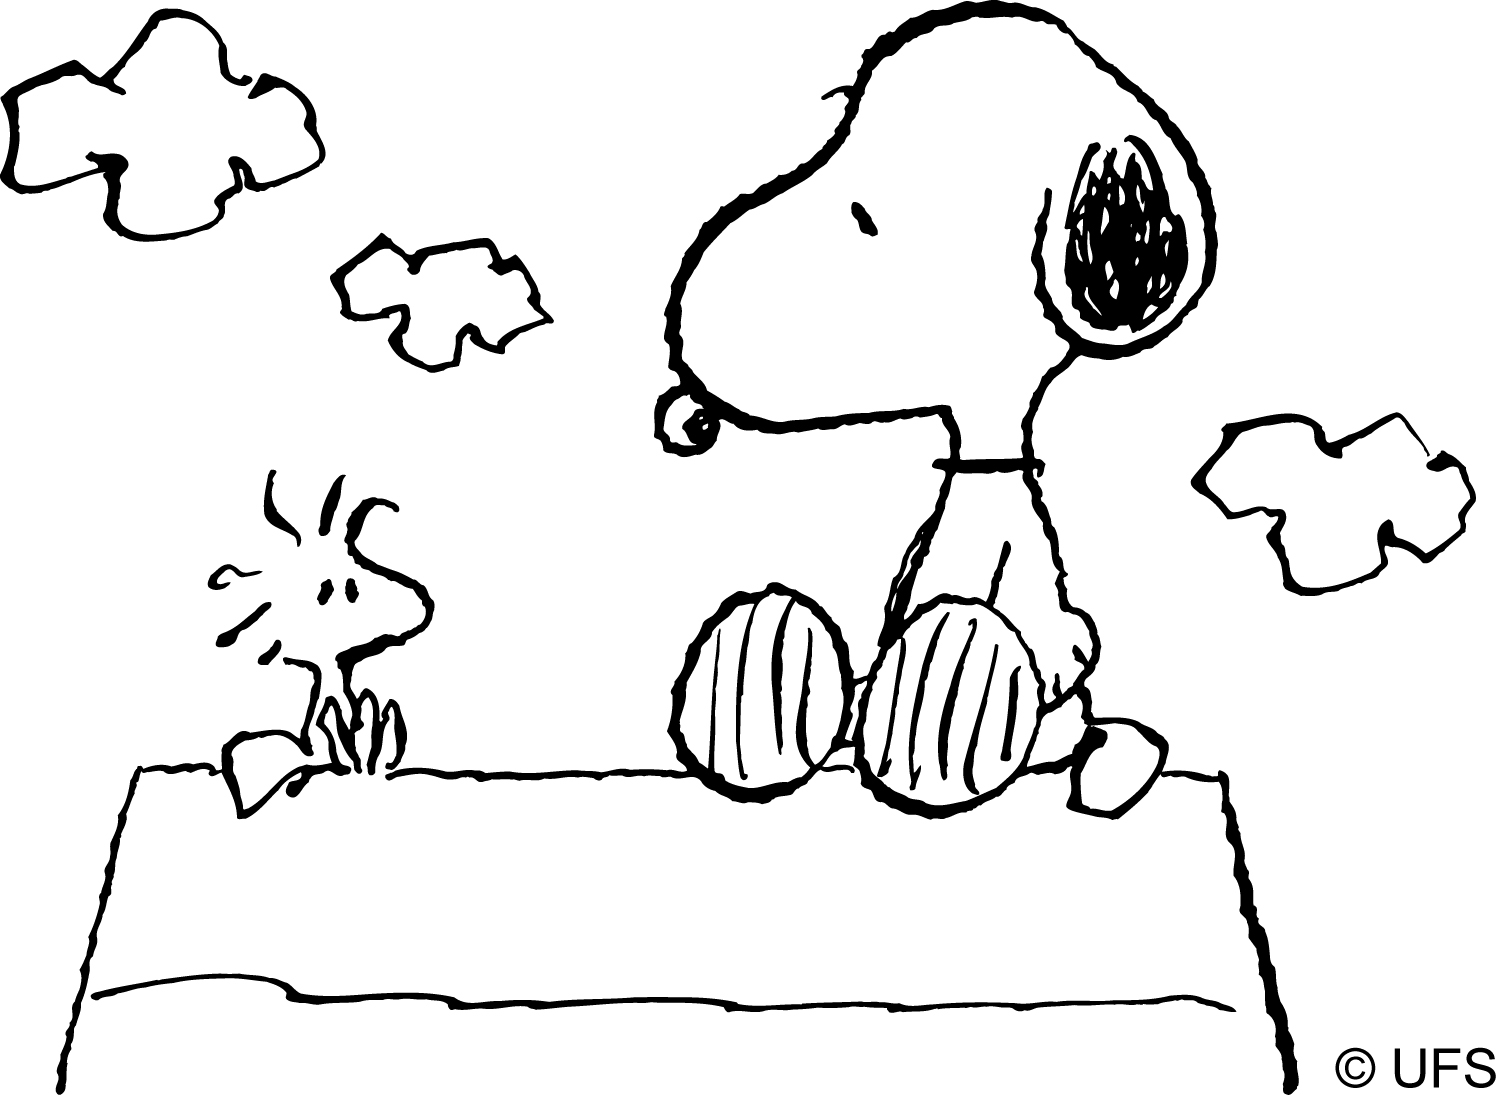 peanuts comics coloring pages - photo#9